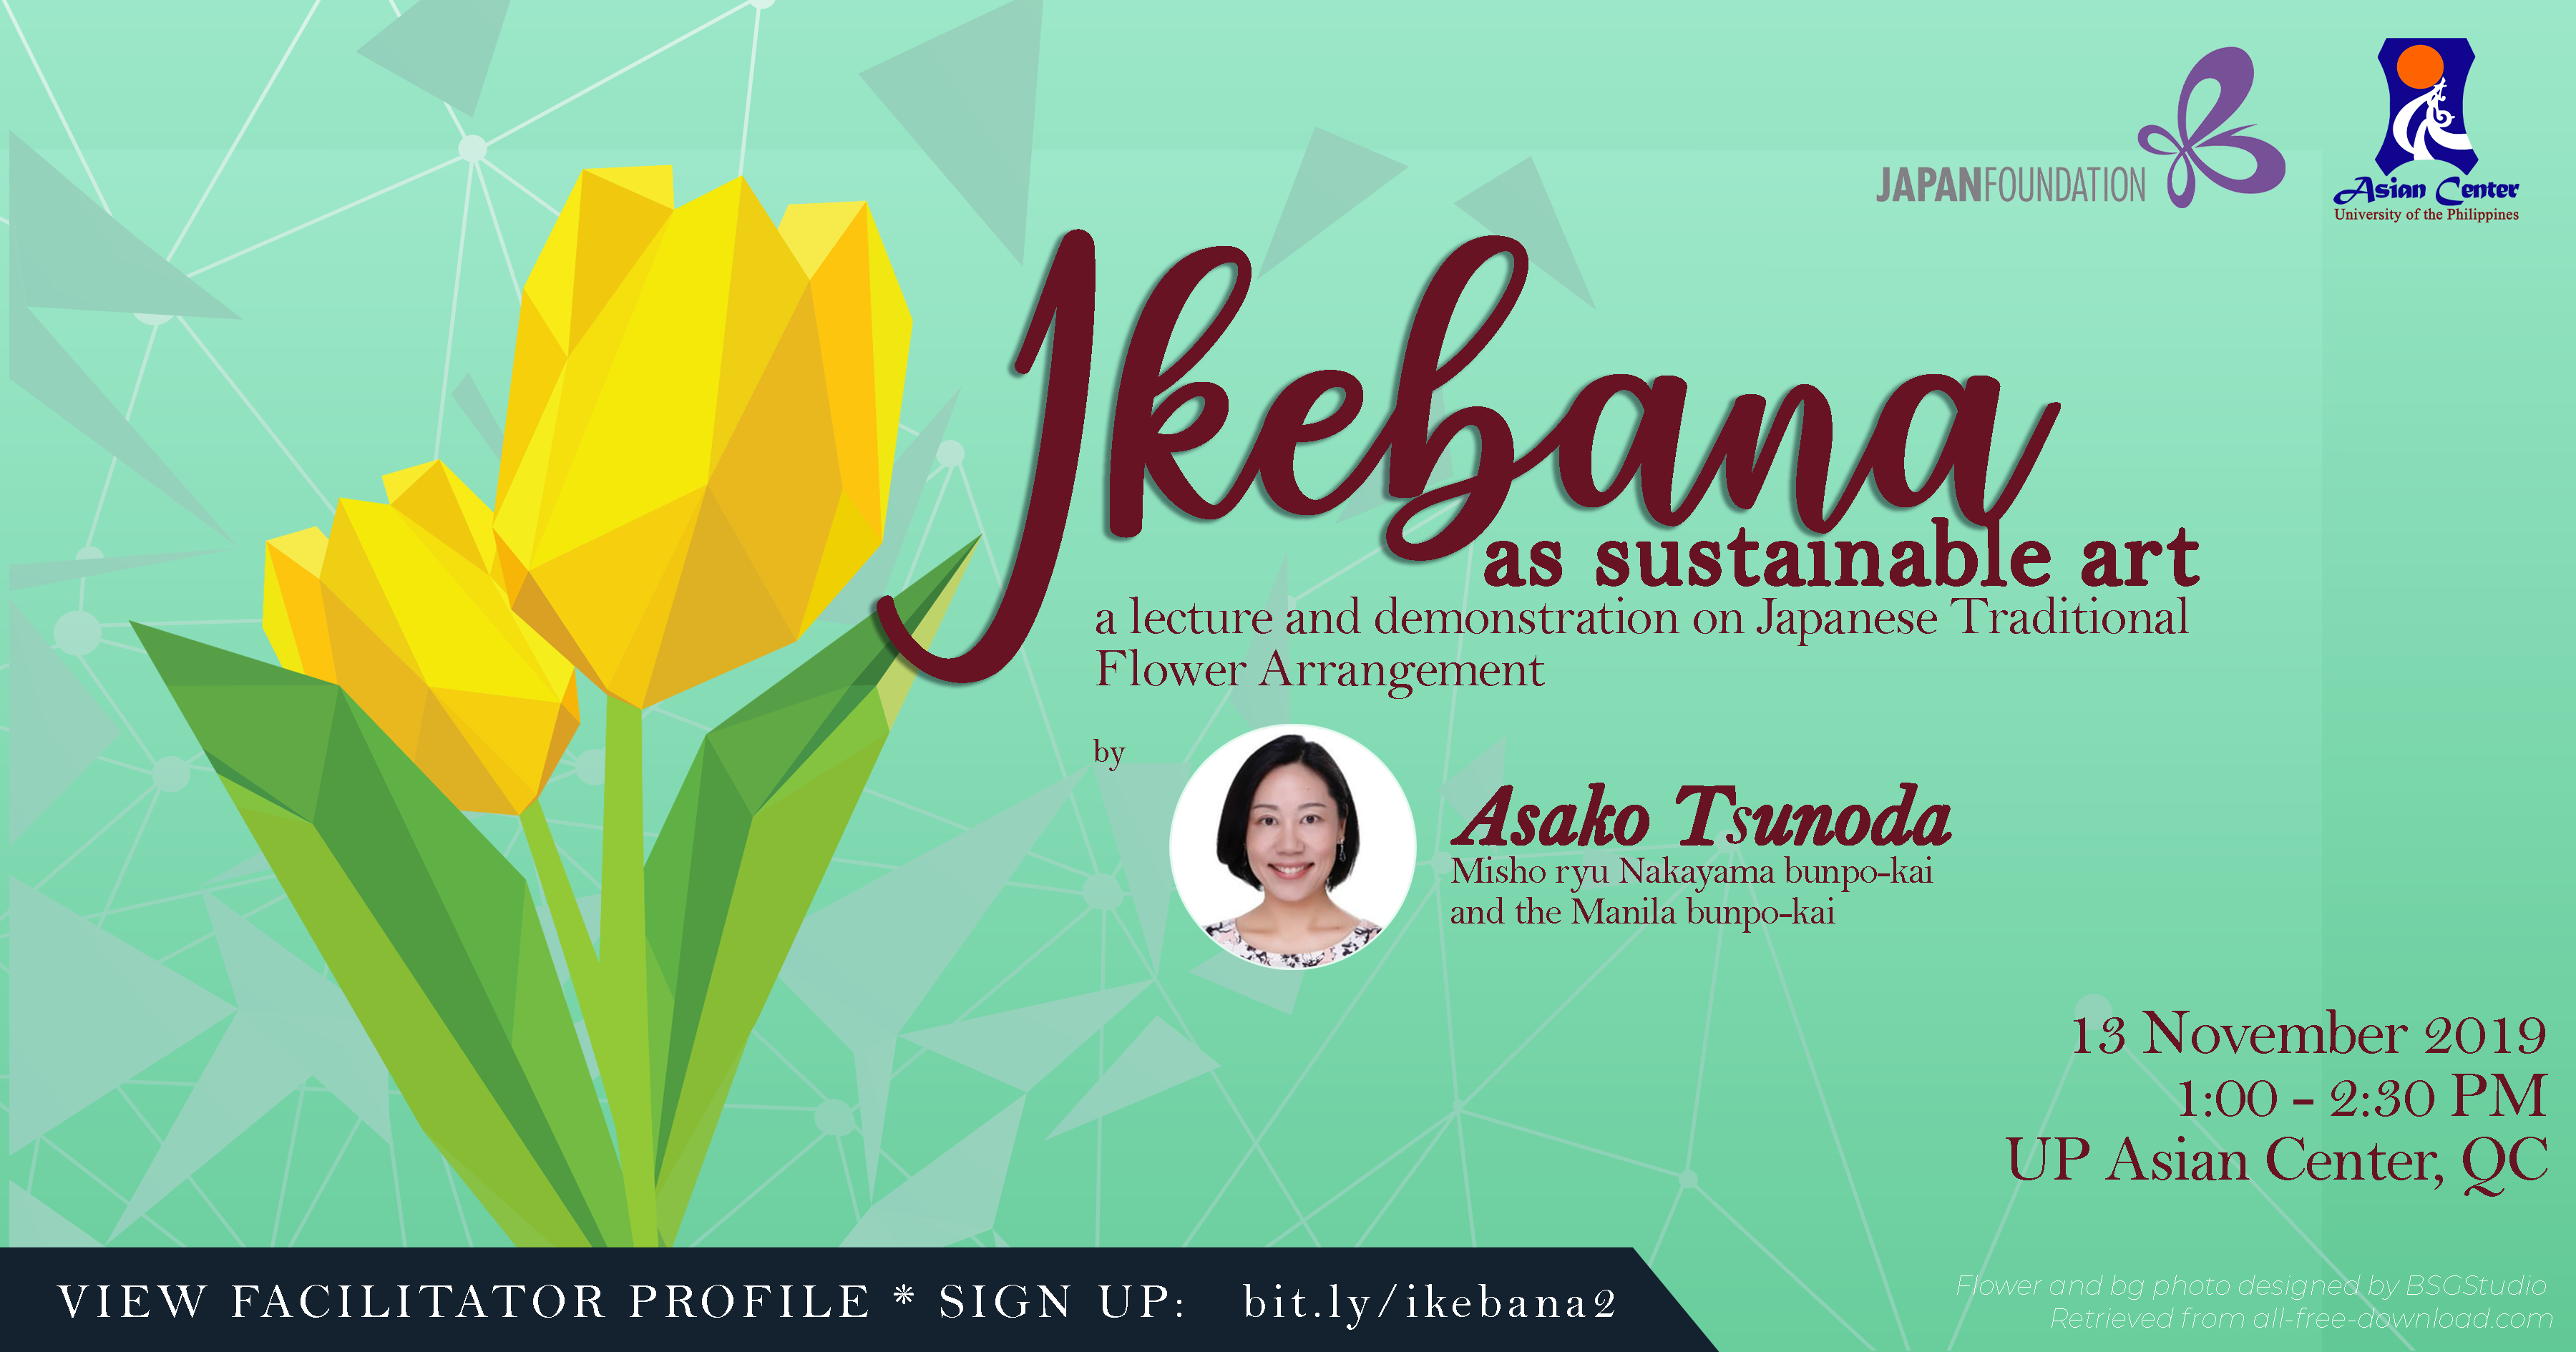 Ikebana as Sustainable Art: A Lecture-Demo on Japanese Traditional Flower Arrangement